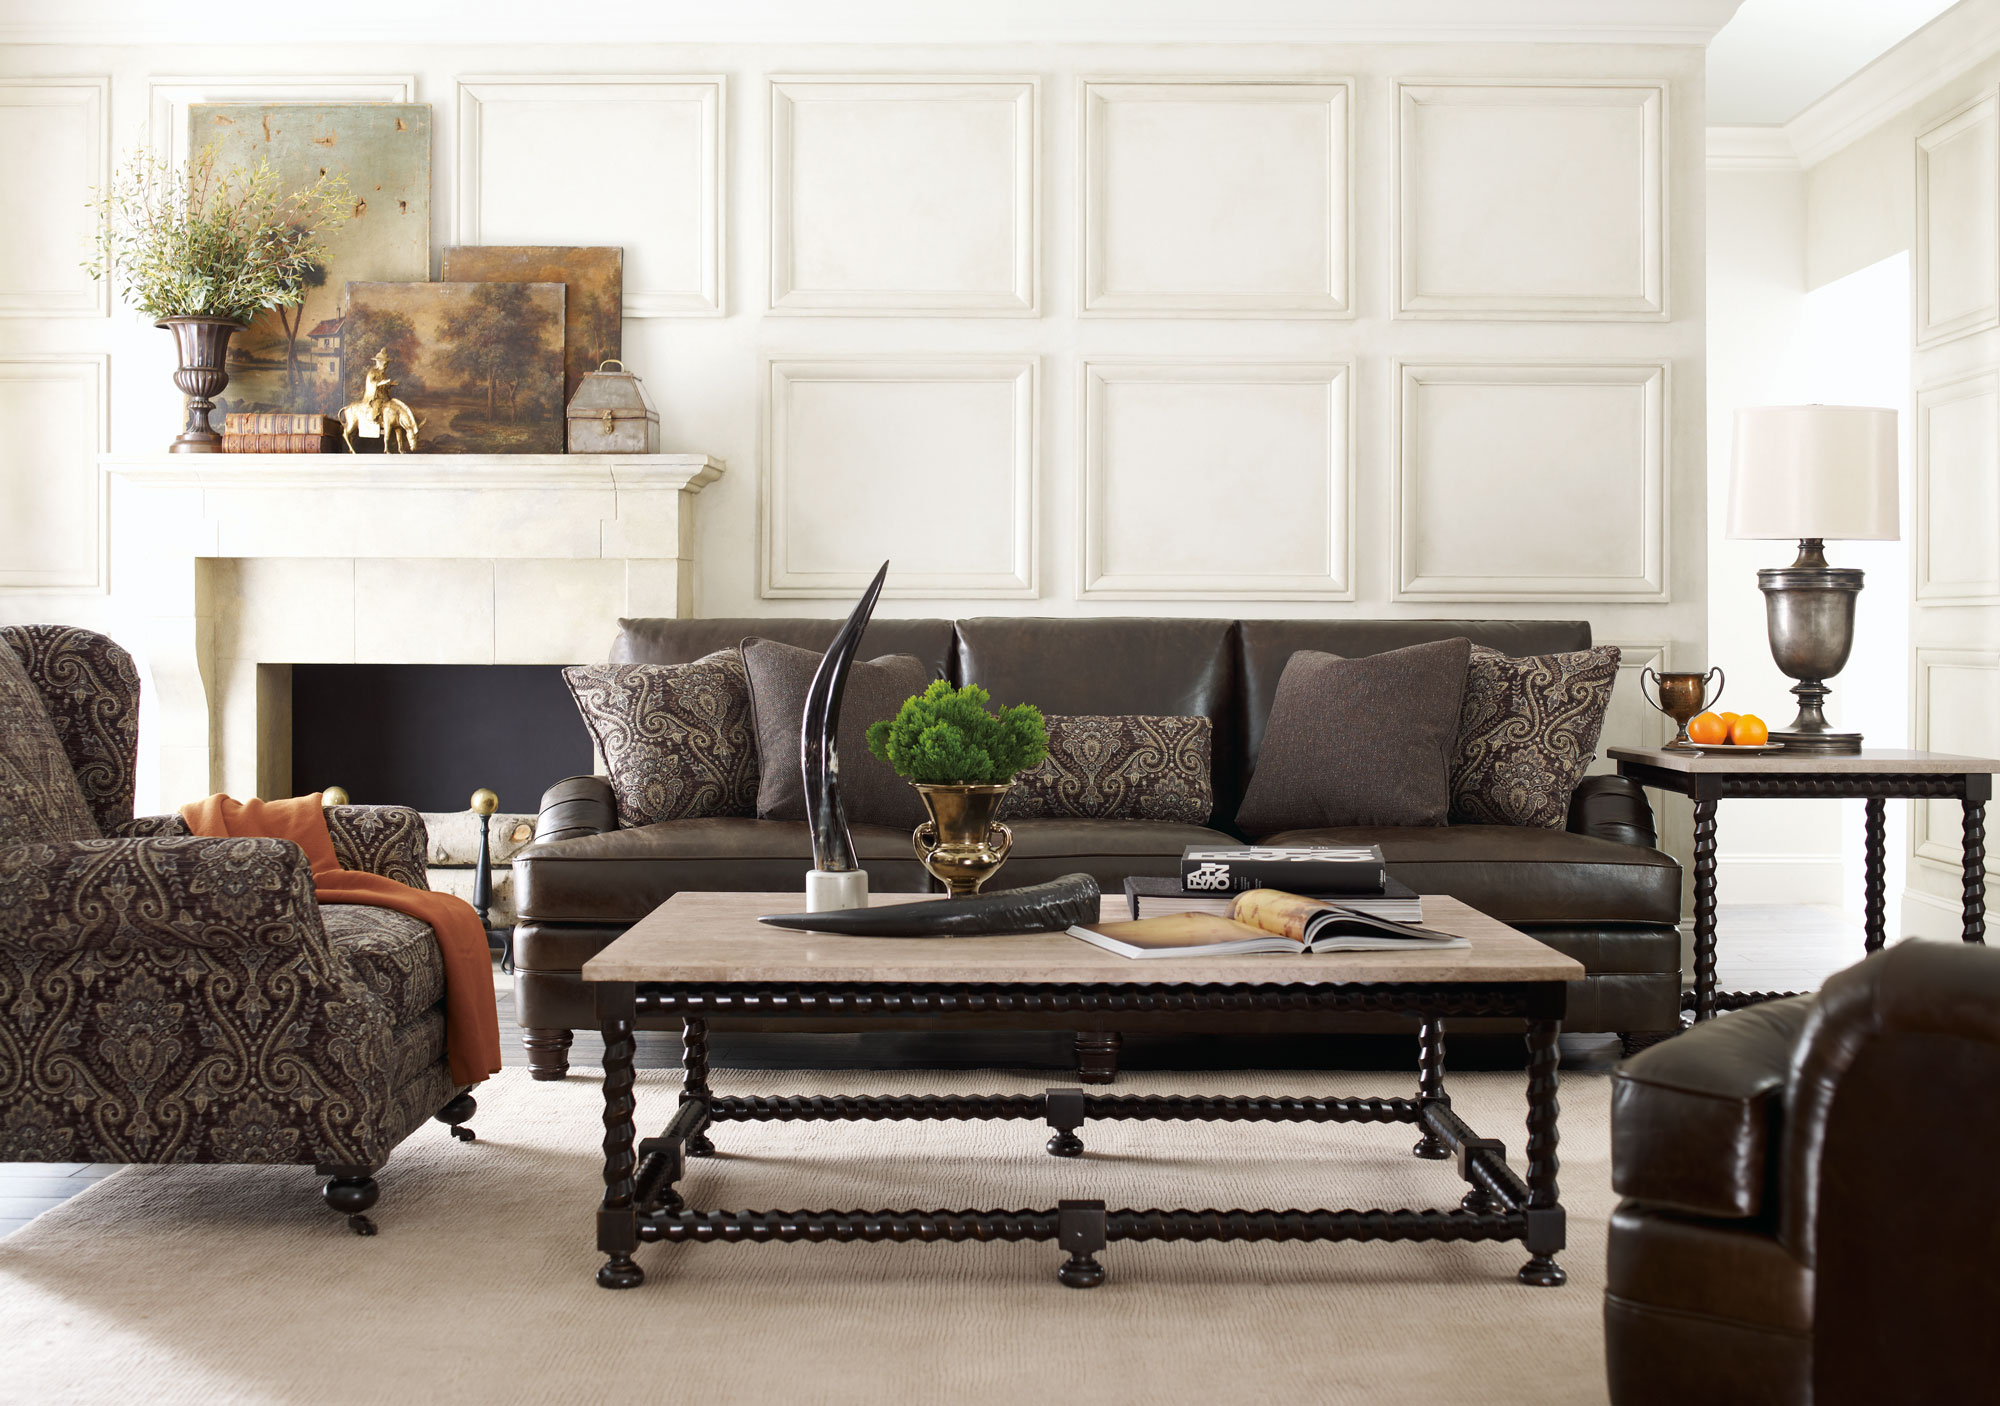 Tarleton Sofa, Justin Chair, Cordova Tables